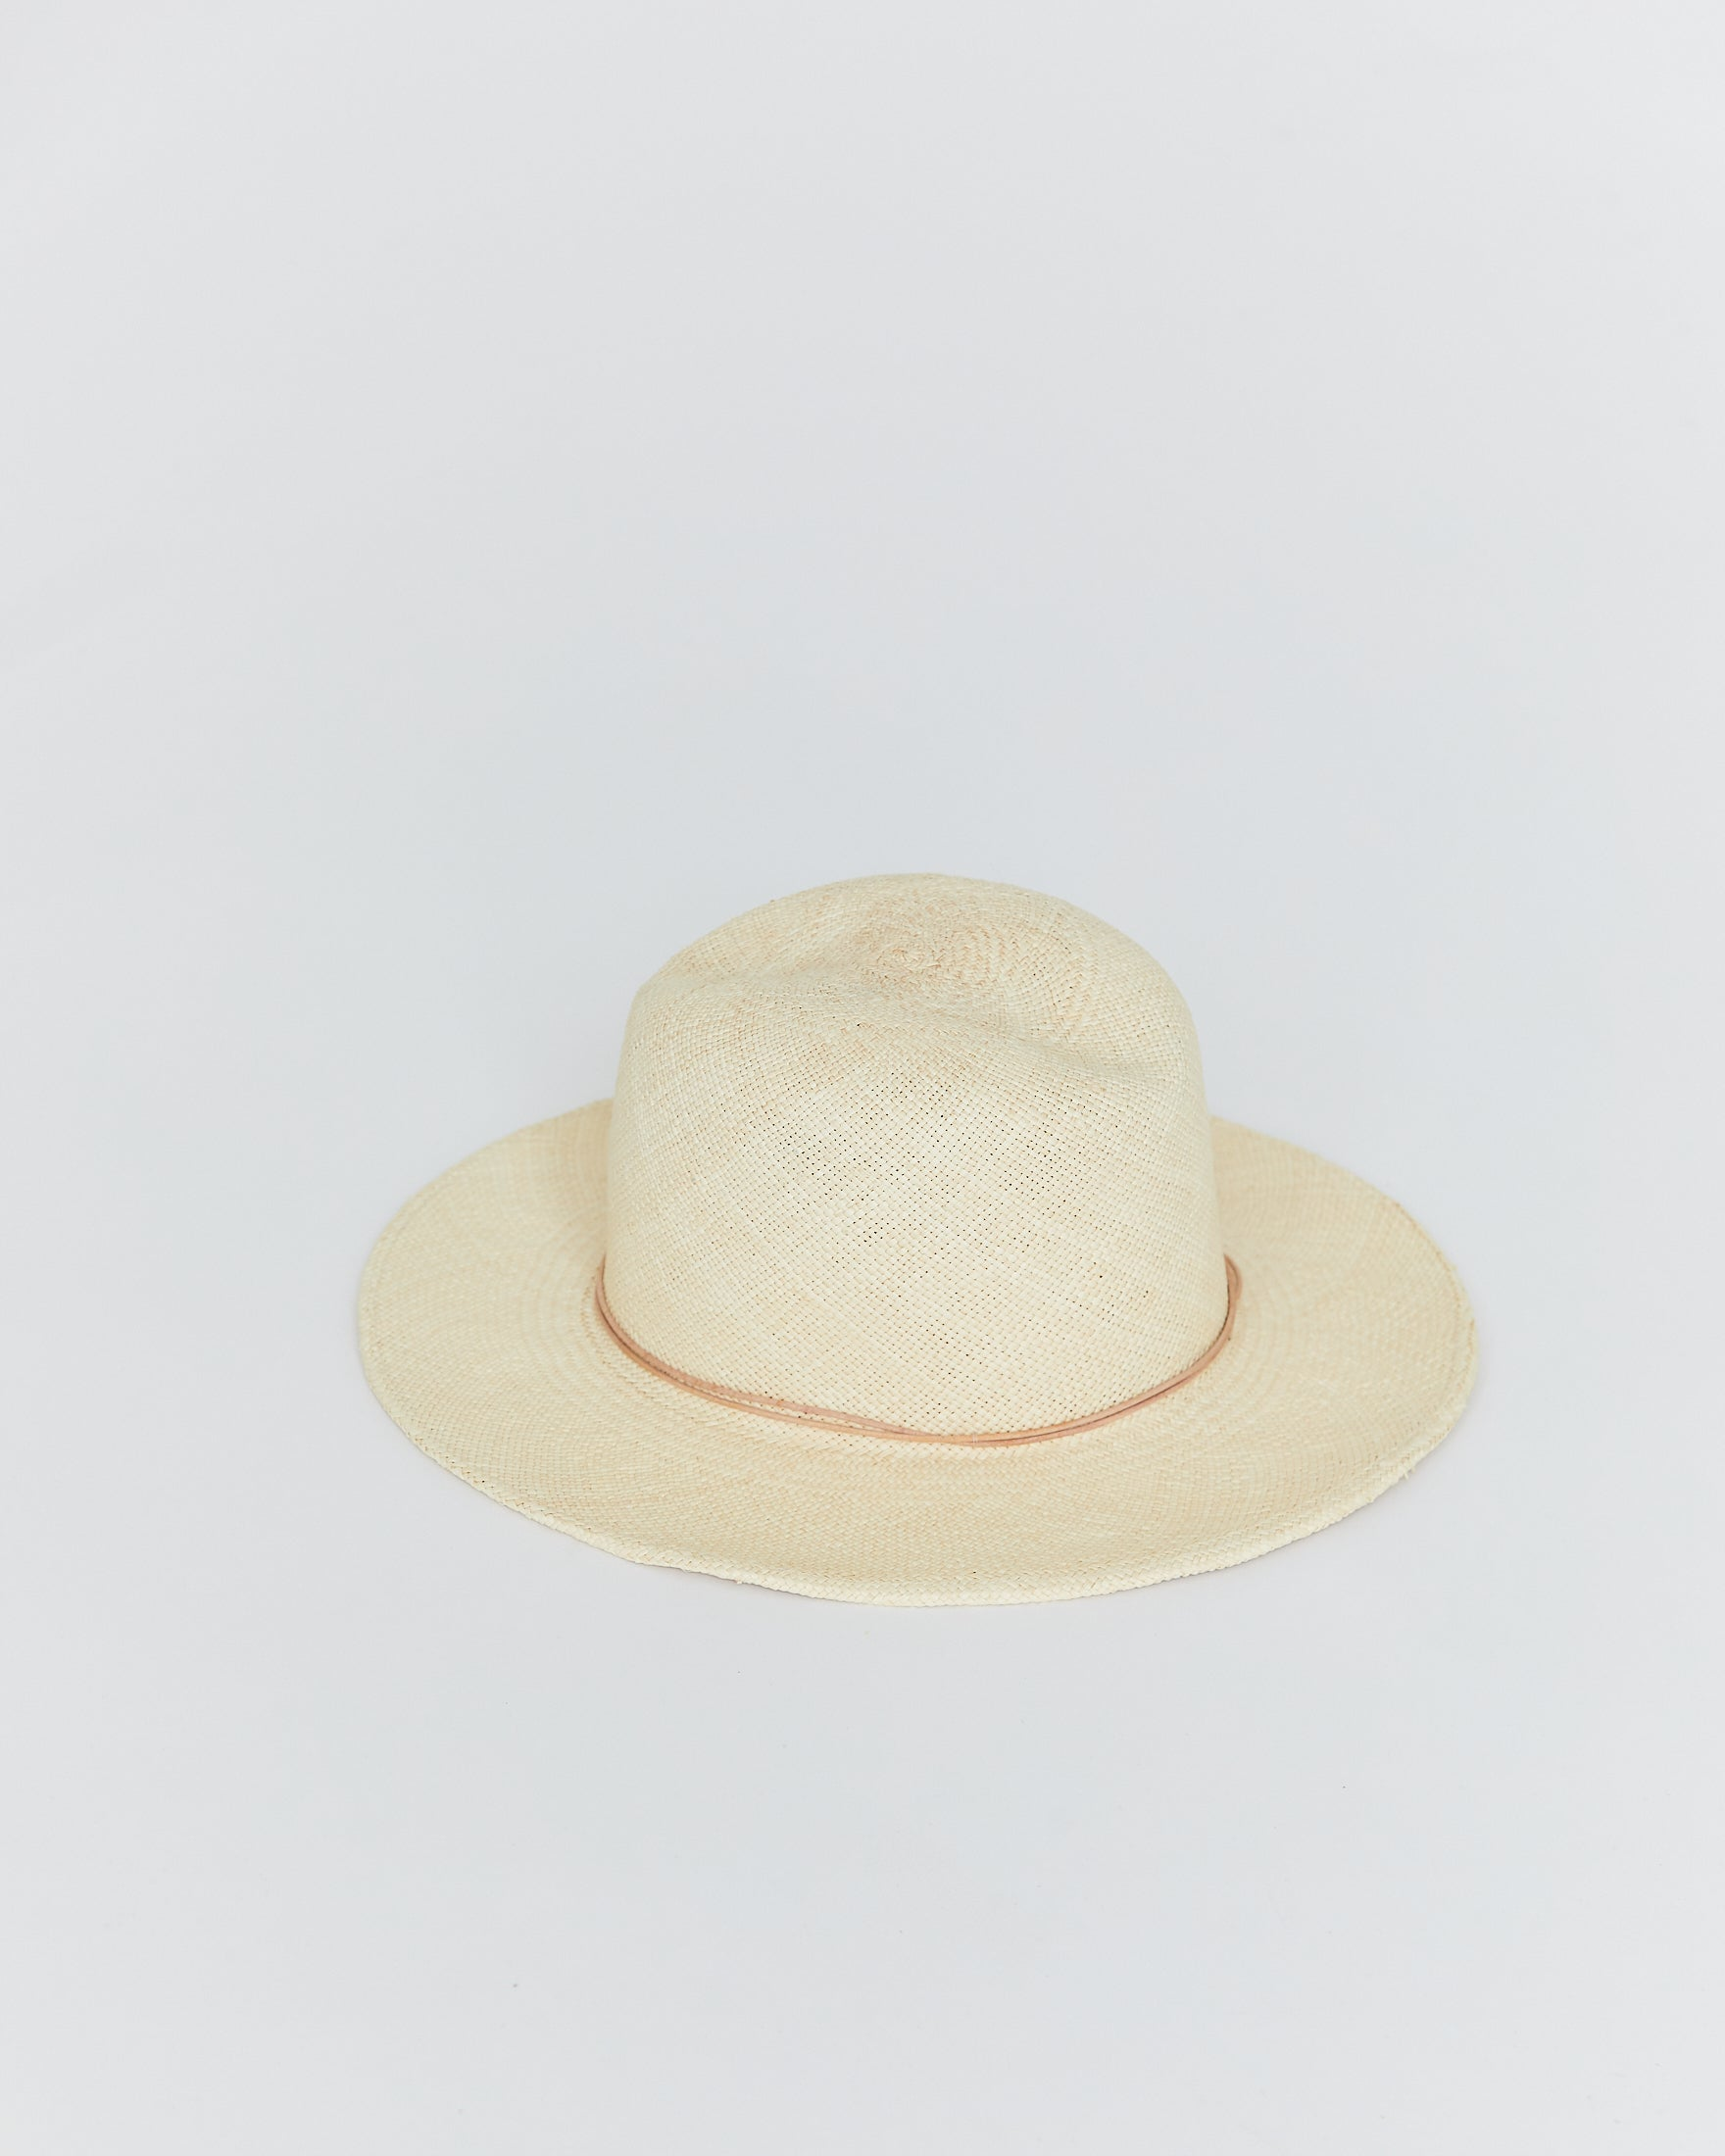 BROOKES BOSWELL - JACKSON HAT - NATURAL PANAMA STRAW